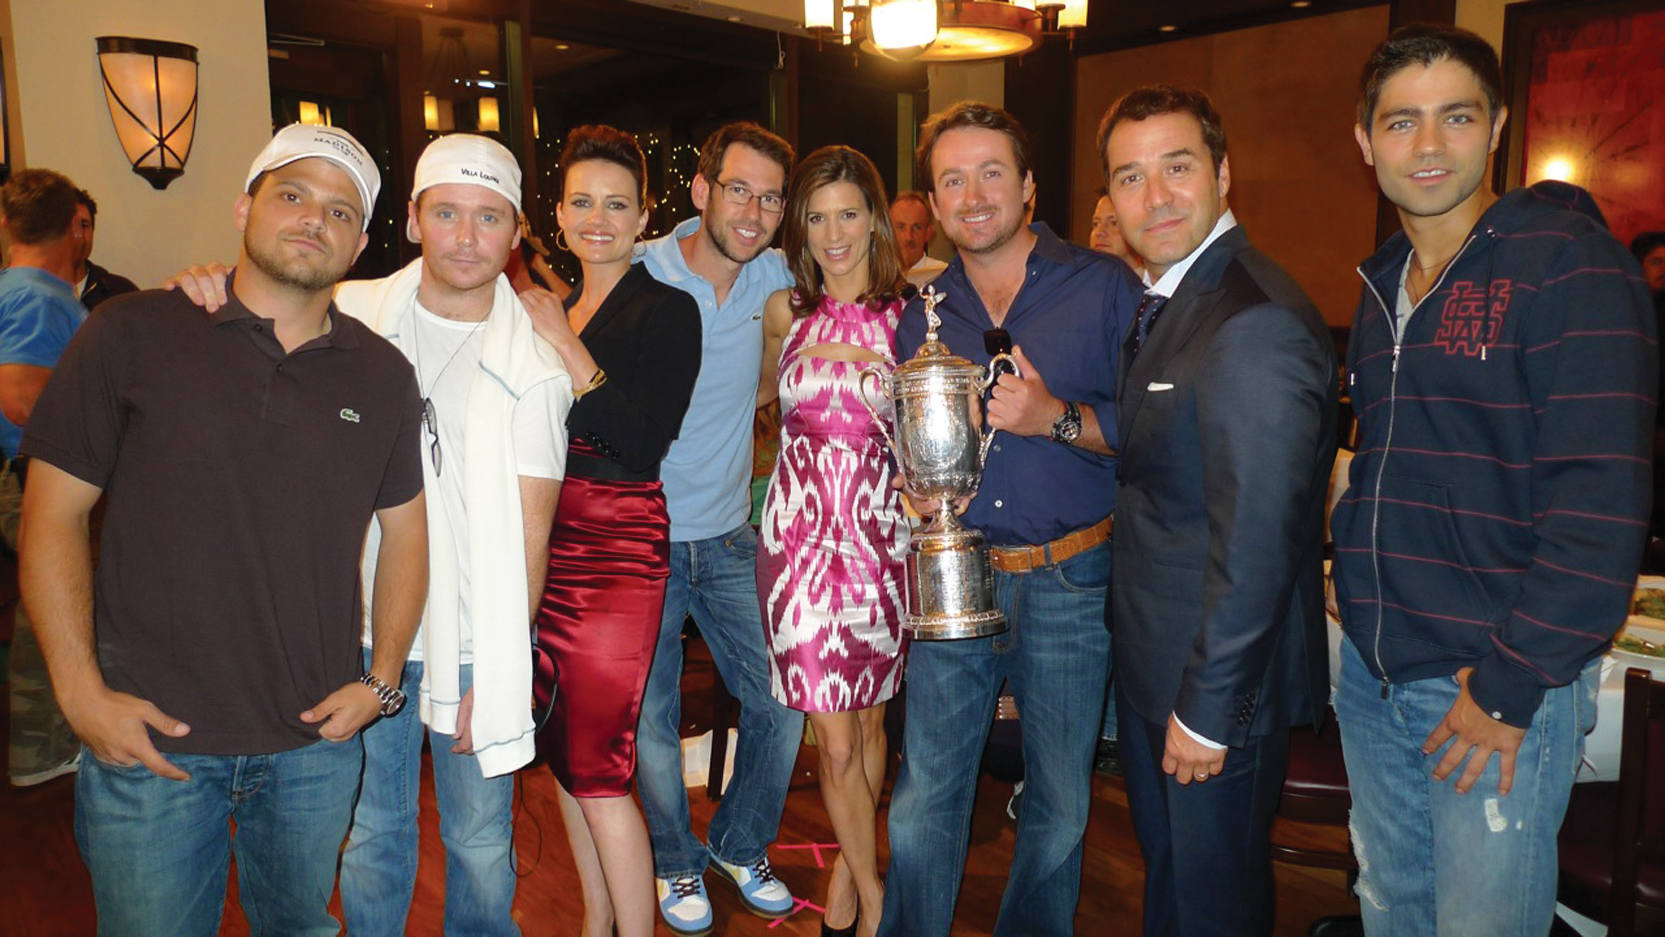 Graeme McDowell's victory at the U.S. Open lands him a guest appearance on the set of HBO's 'Entourage' show.